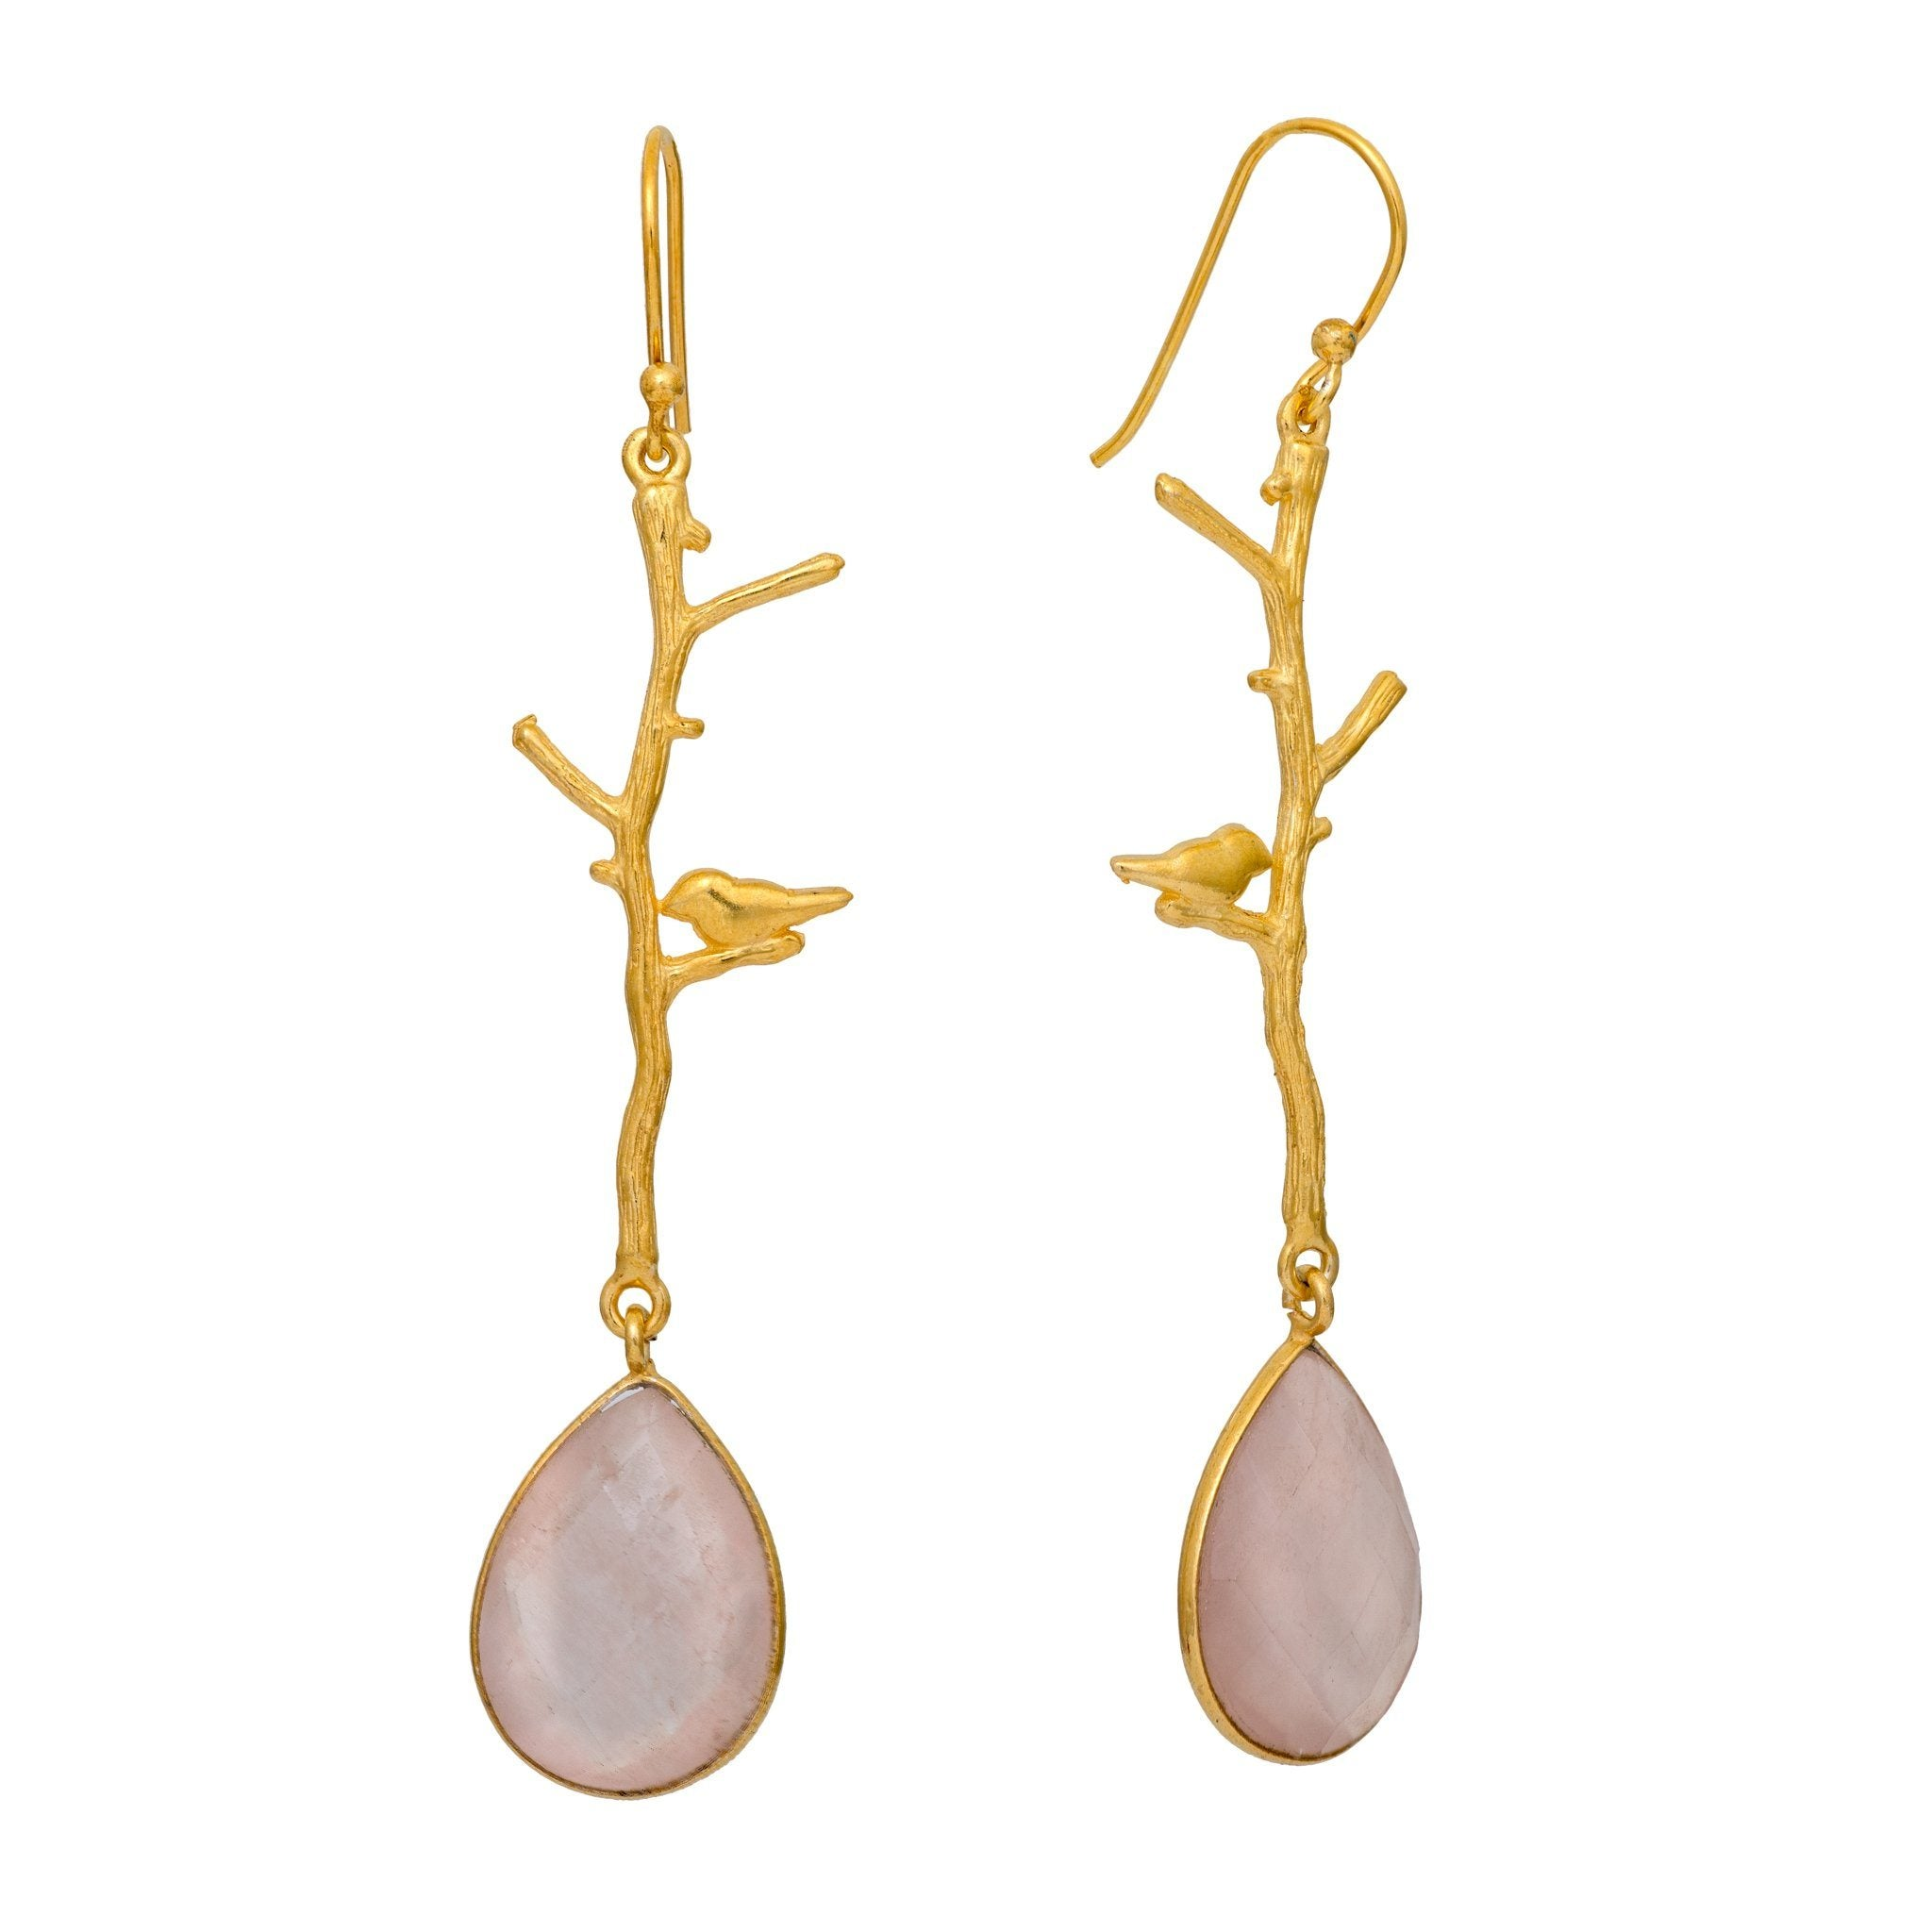 NOK rose quartz earrings - MadamSiam